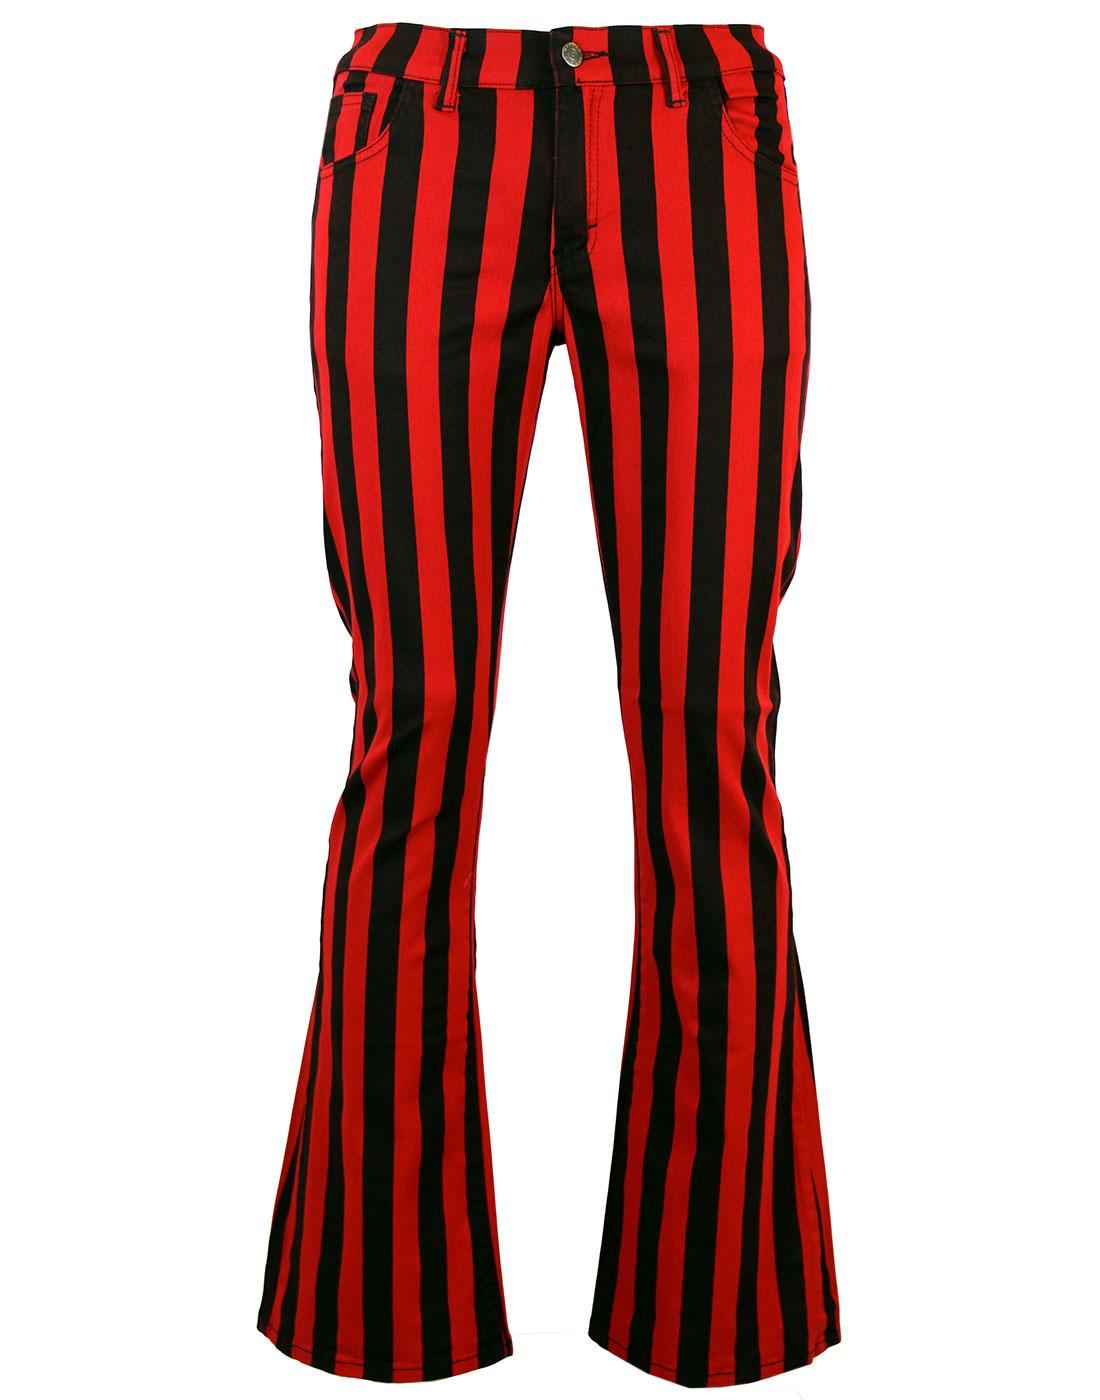 Holy Roller - Retro 60s Striped 70s Indie Flares R